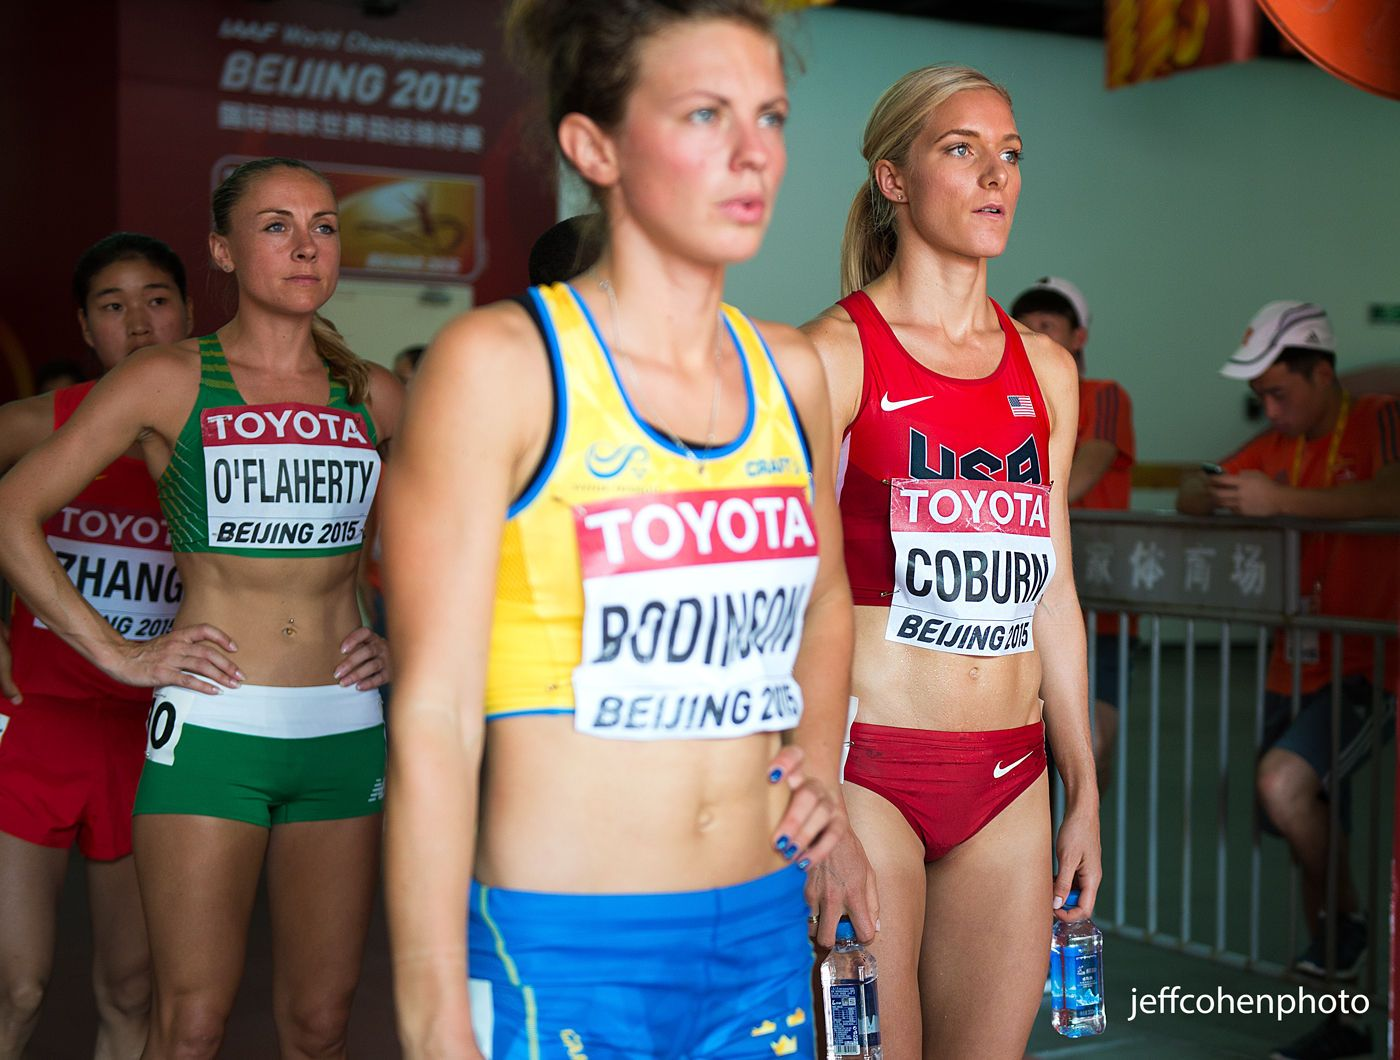 1beijing2015_day3_emma_coburn_steeple_tunnel_jeff_cohen_photo_9731_web.jpg